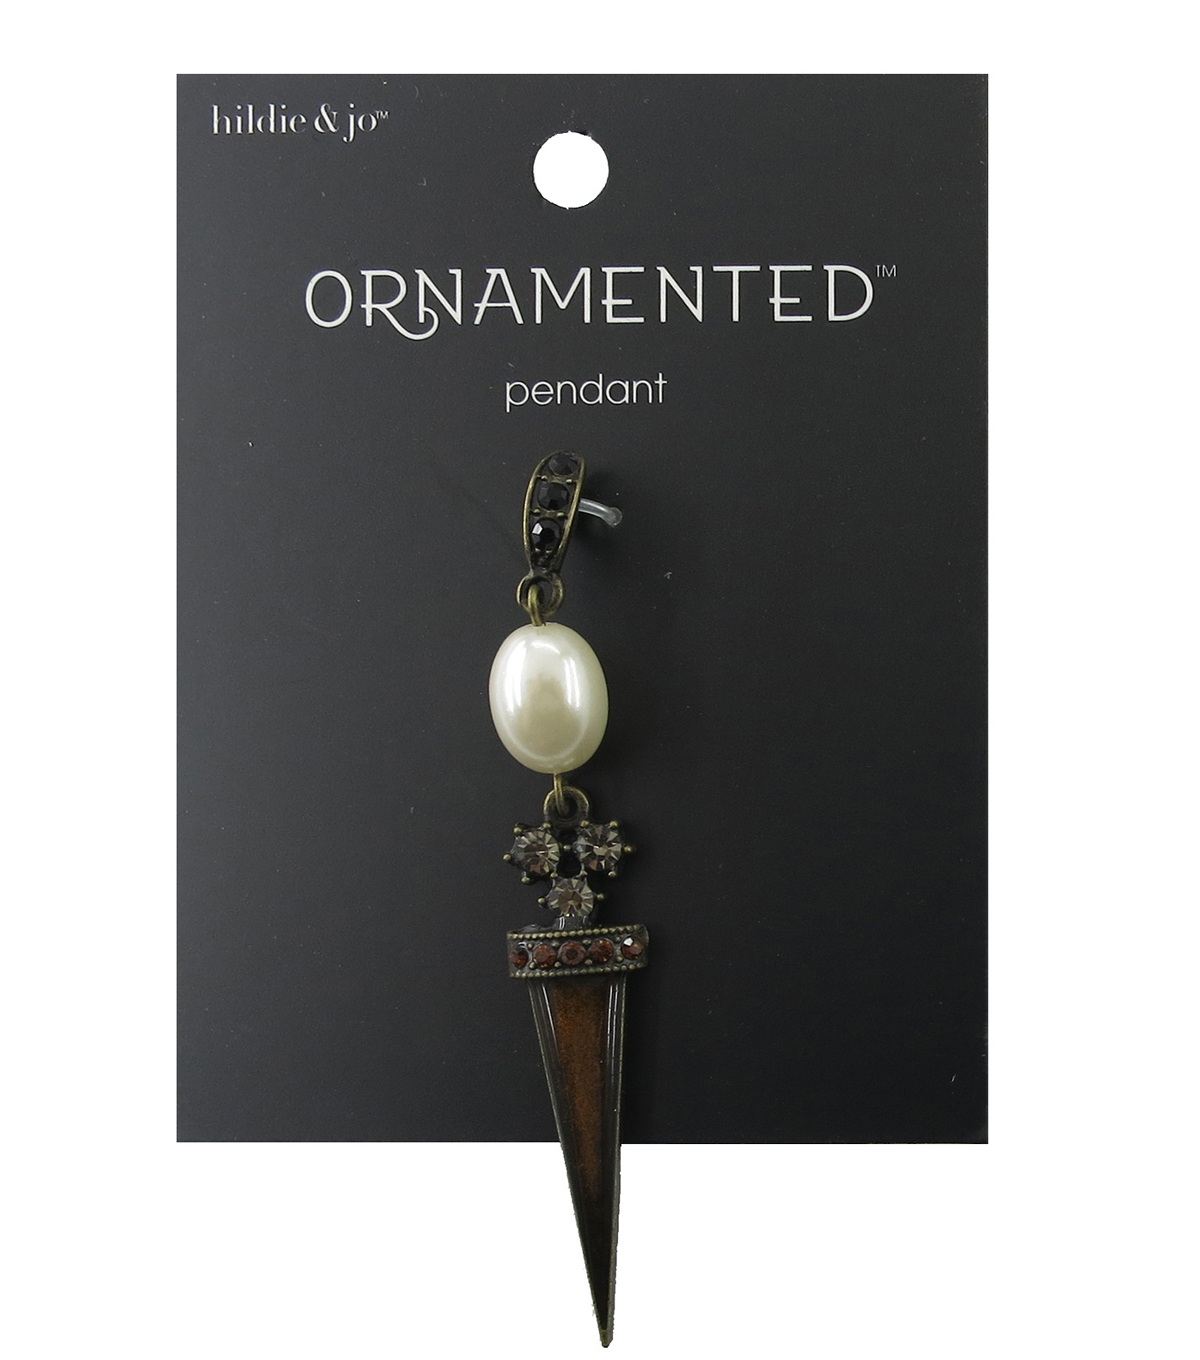 hildie & jo Ornamented Spike Antique Gold Pendant-Oval Pearl